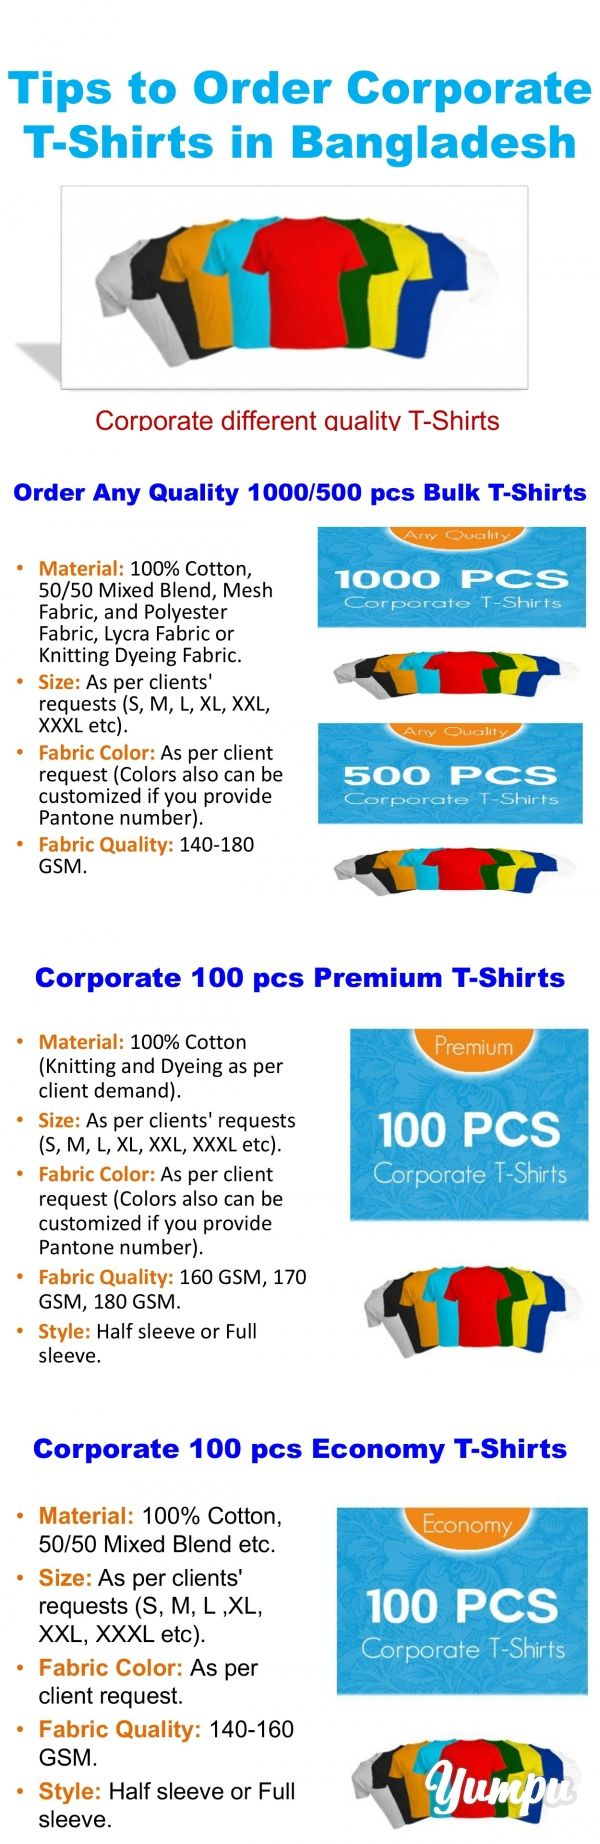 Tips to Order Corporate T-Shirts in Bangladesh - Magazine with 7 pages: Everyone need to find out the best corporate t-shirts wholesaler in Bangladesh for make their office program t-shirts or any event t-shirts. To order some corporate t-shirts, you may know some important matter as like as Material, Size, Fabric Color, Fabric Quality, Style and also Art Work Color.